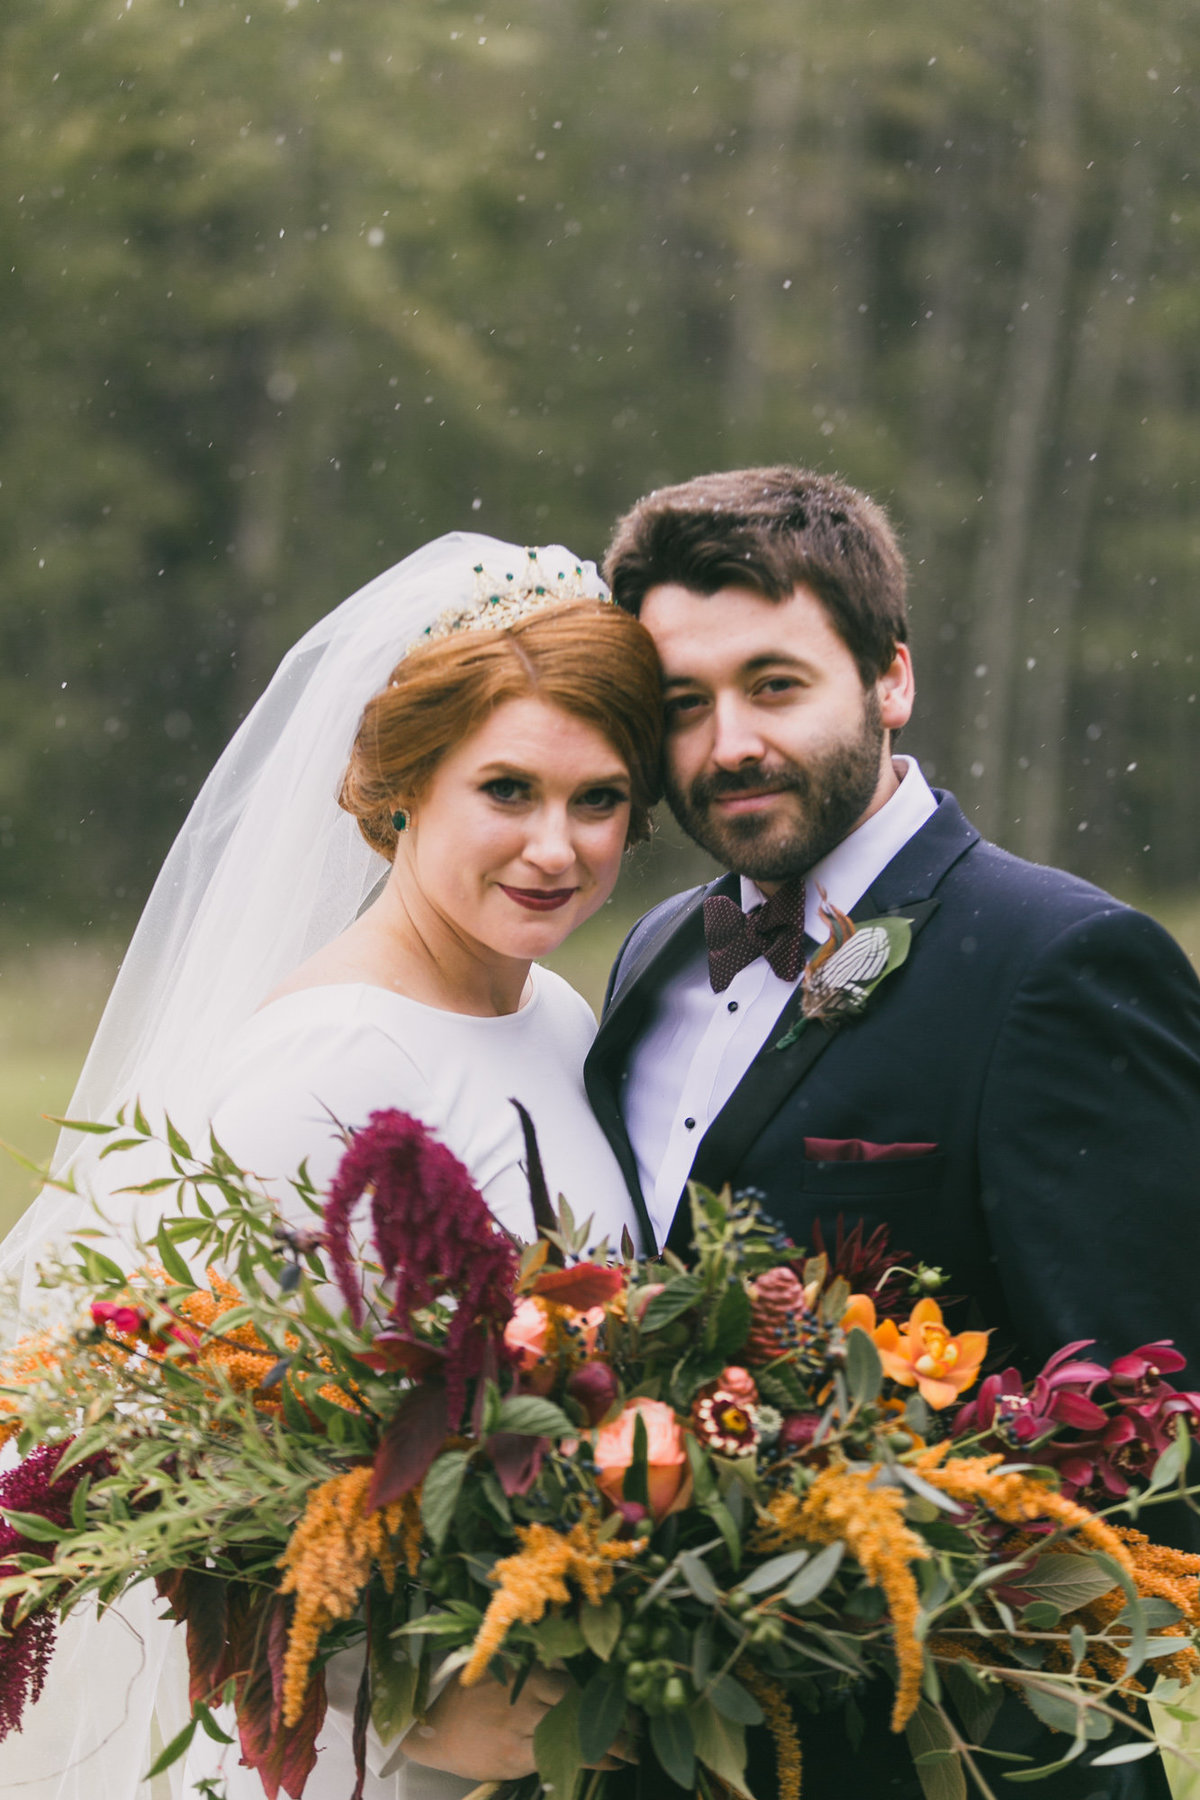 Jennifer_Mooney_Photography_Abbey_Stephen_Fall_Winter_Glacier_Park_Elopement-62